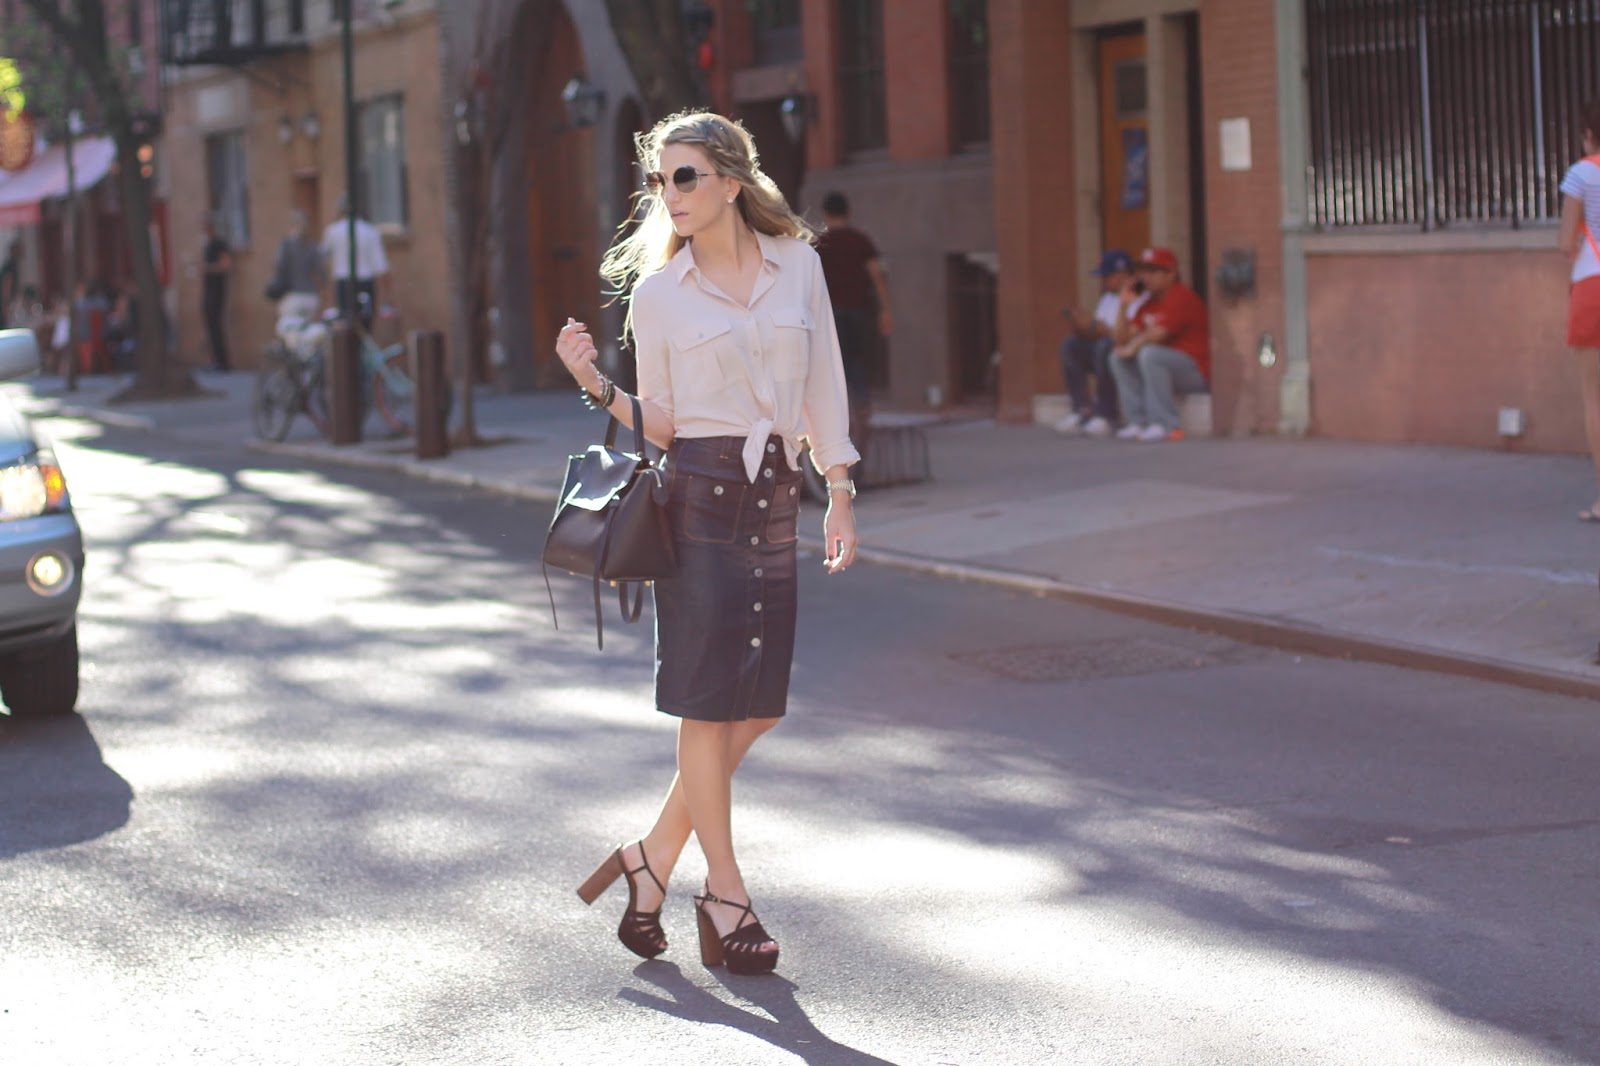 tie front top outfit, soho street style, boho luxe style